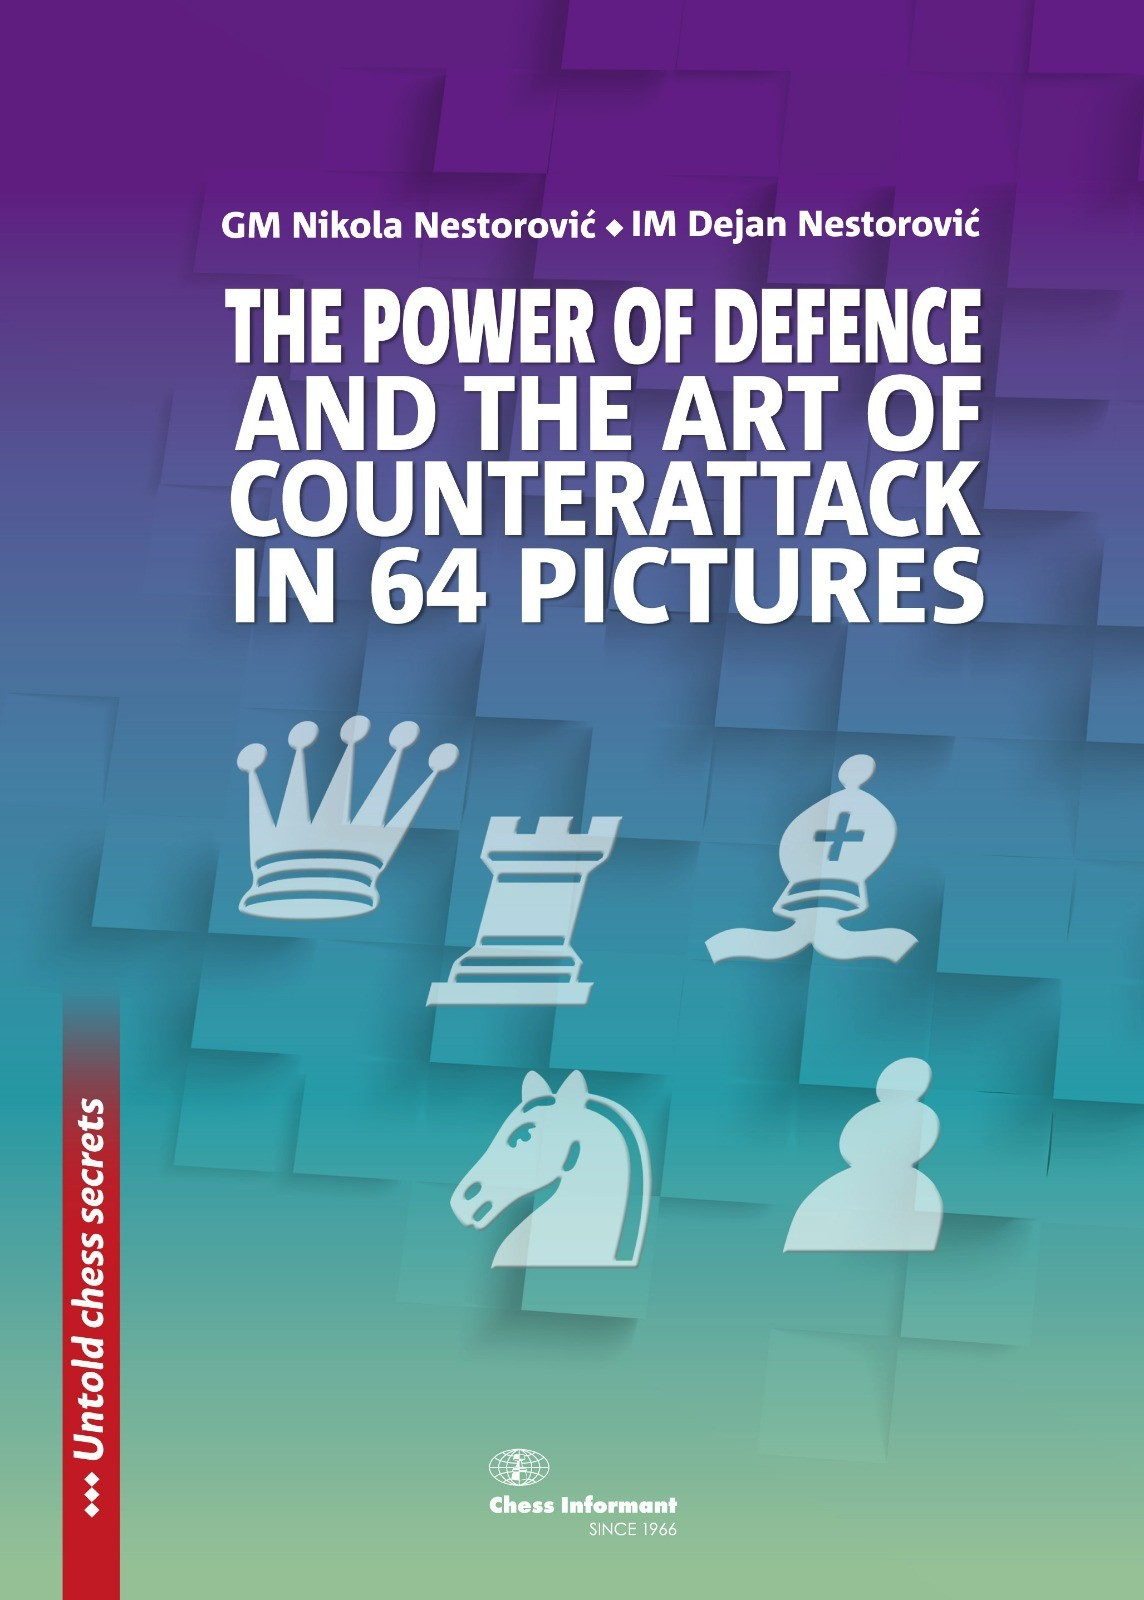 The power of defence and the art of counterattack in 64 pictures